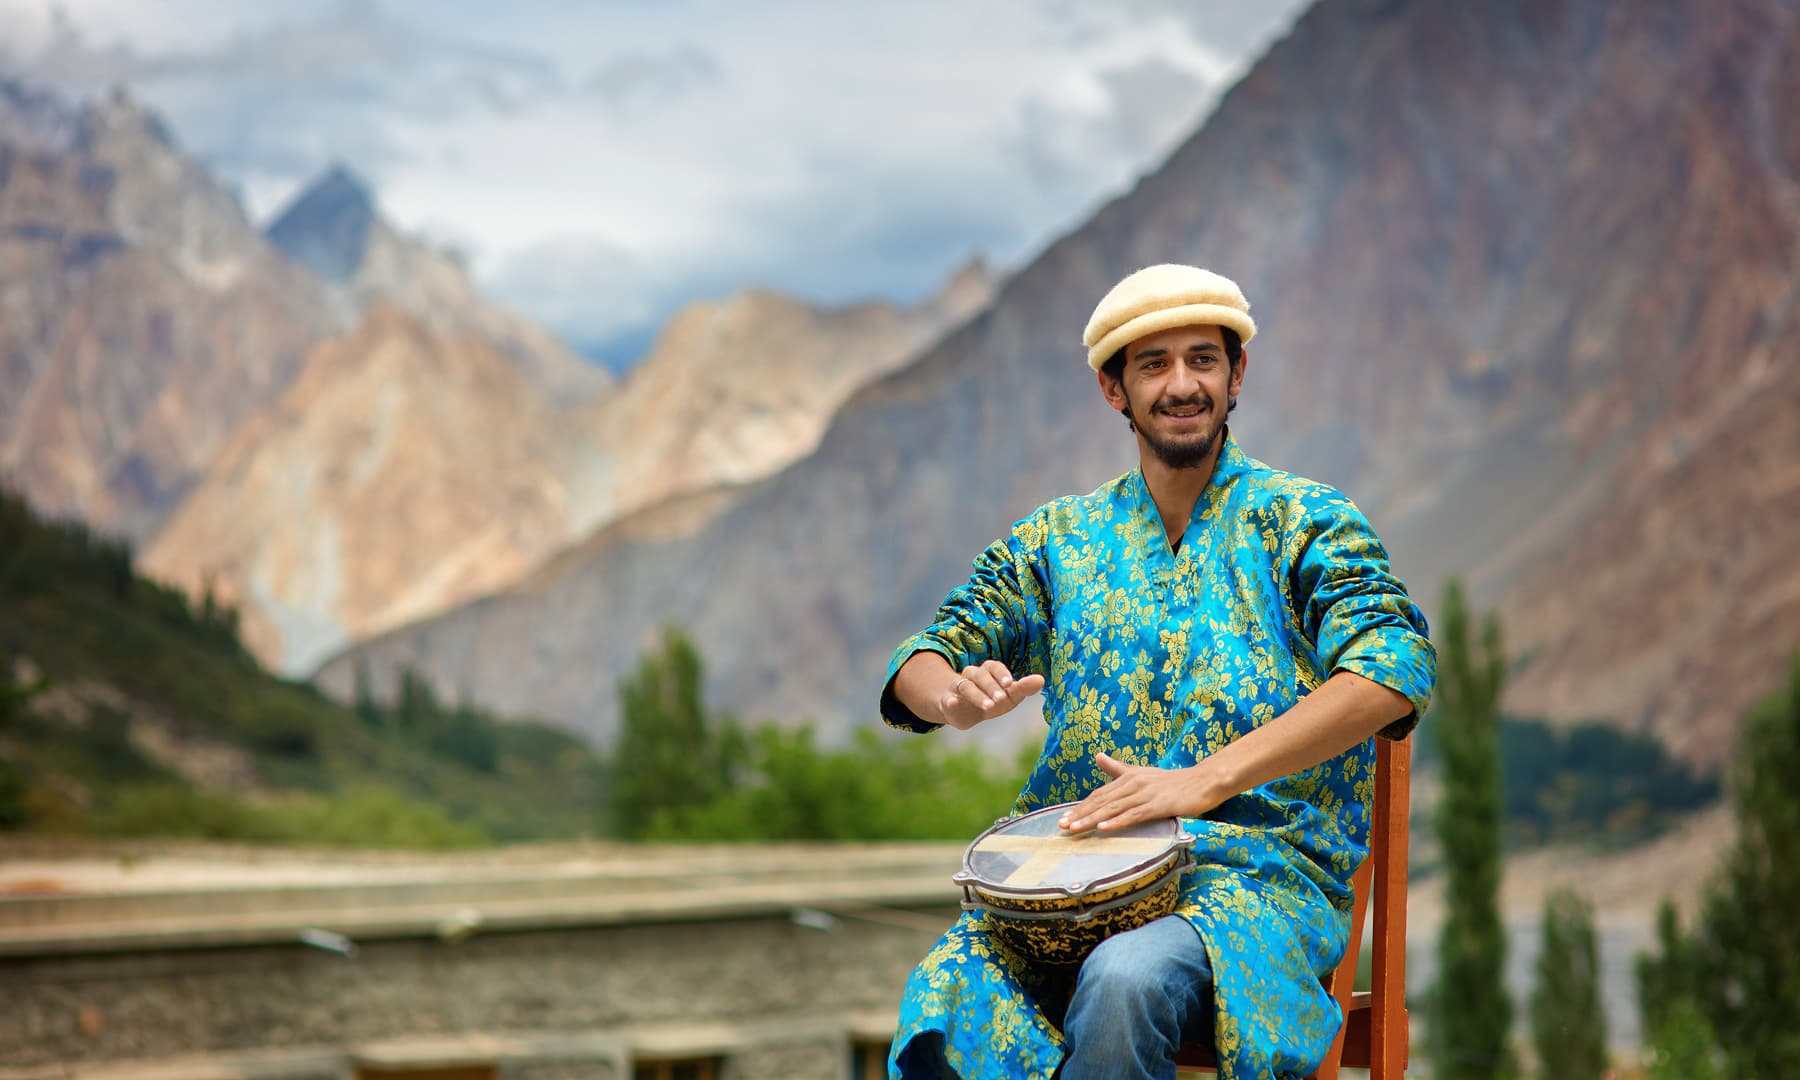 A student happily plays the drums.